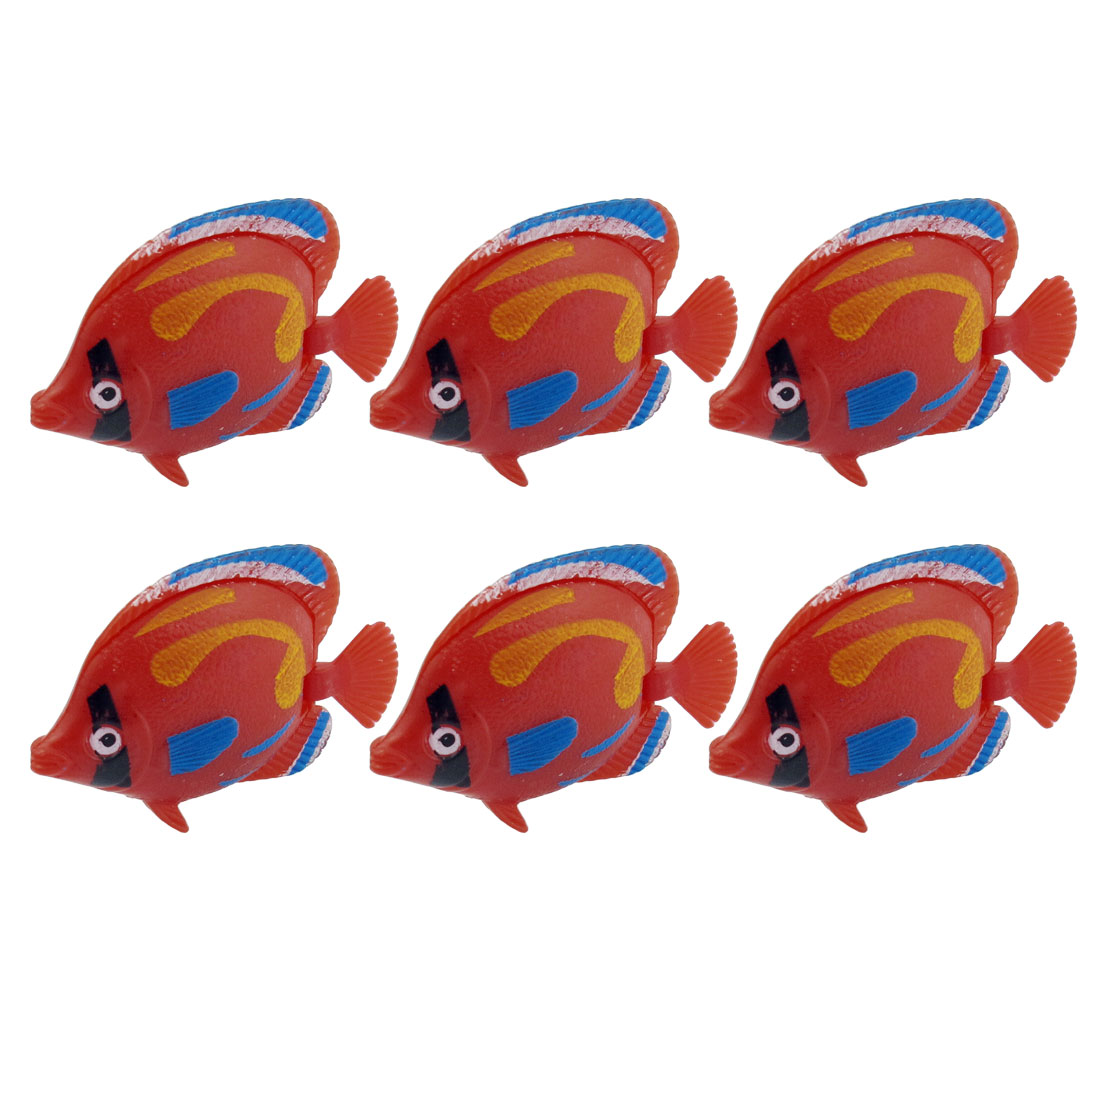 6 Pcs Decor Red Blue Yellow Plastic Floating Swing Tail Tropical Fish